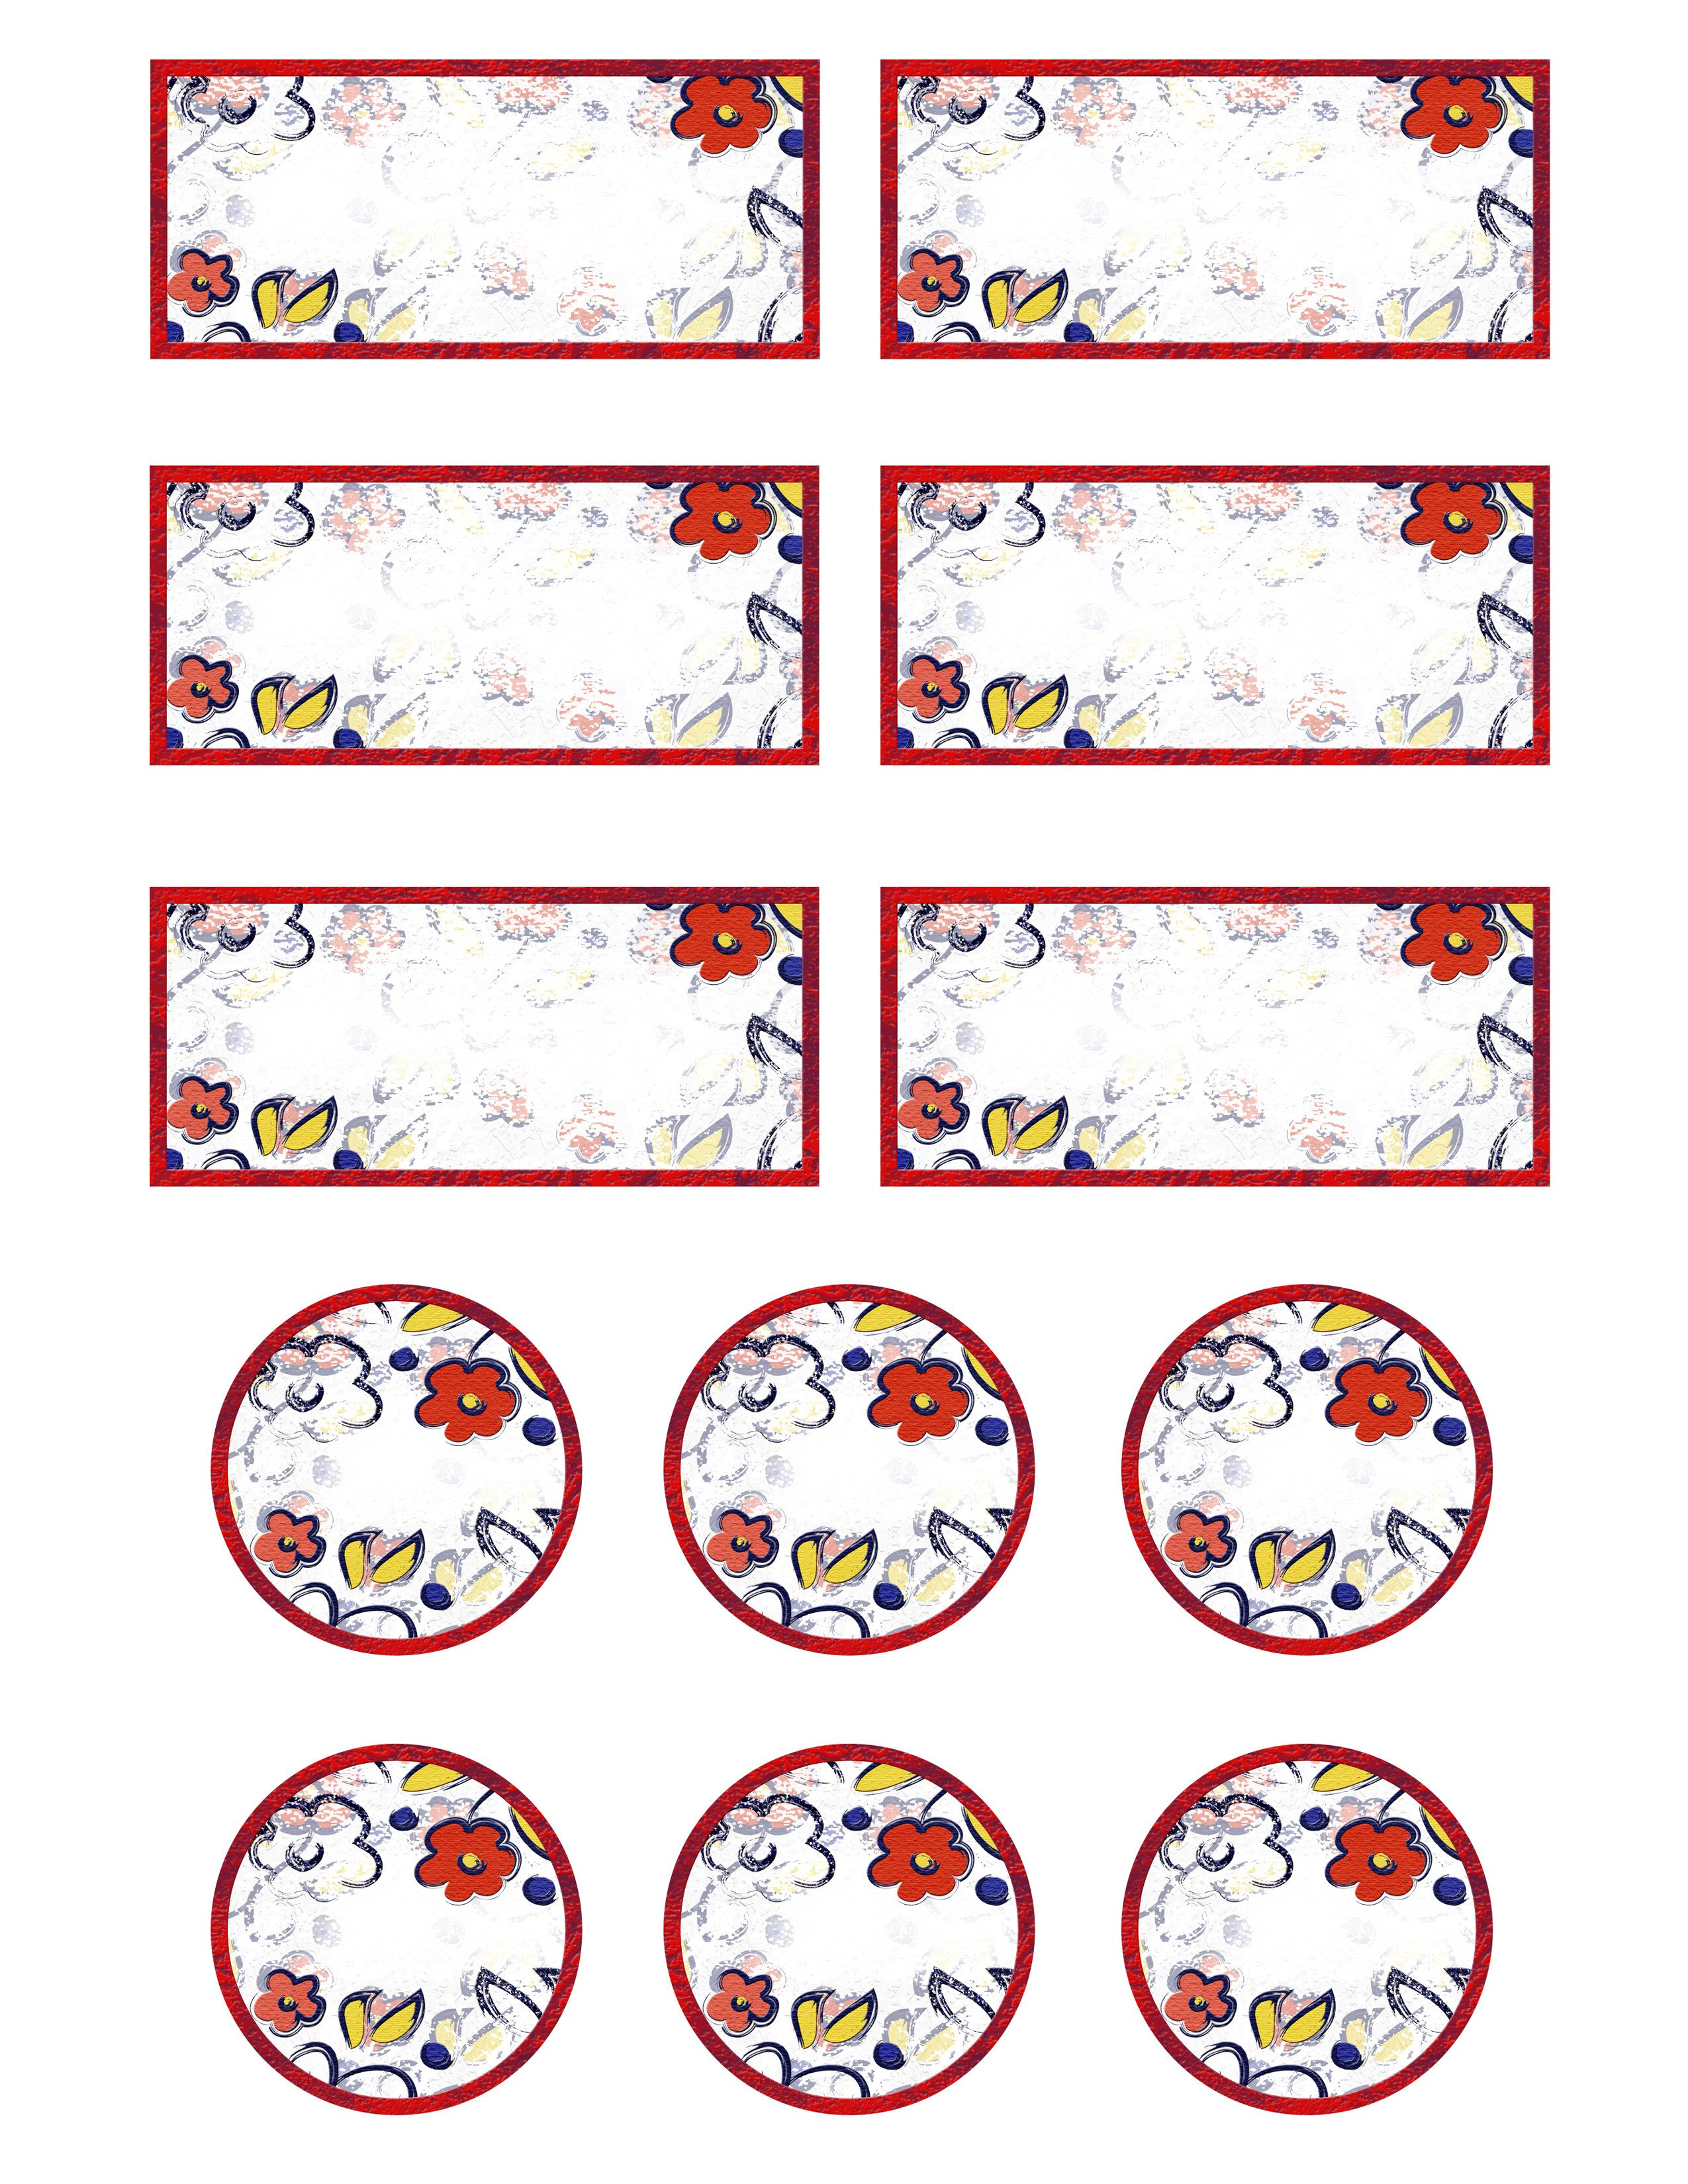 Free Printable Label Template Free Printable Jar Labels for Home Canning